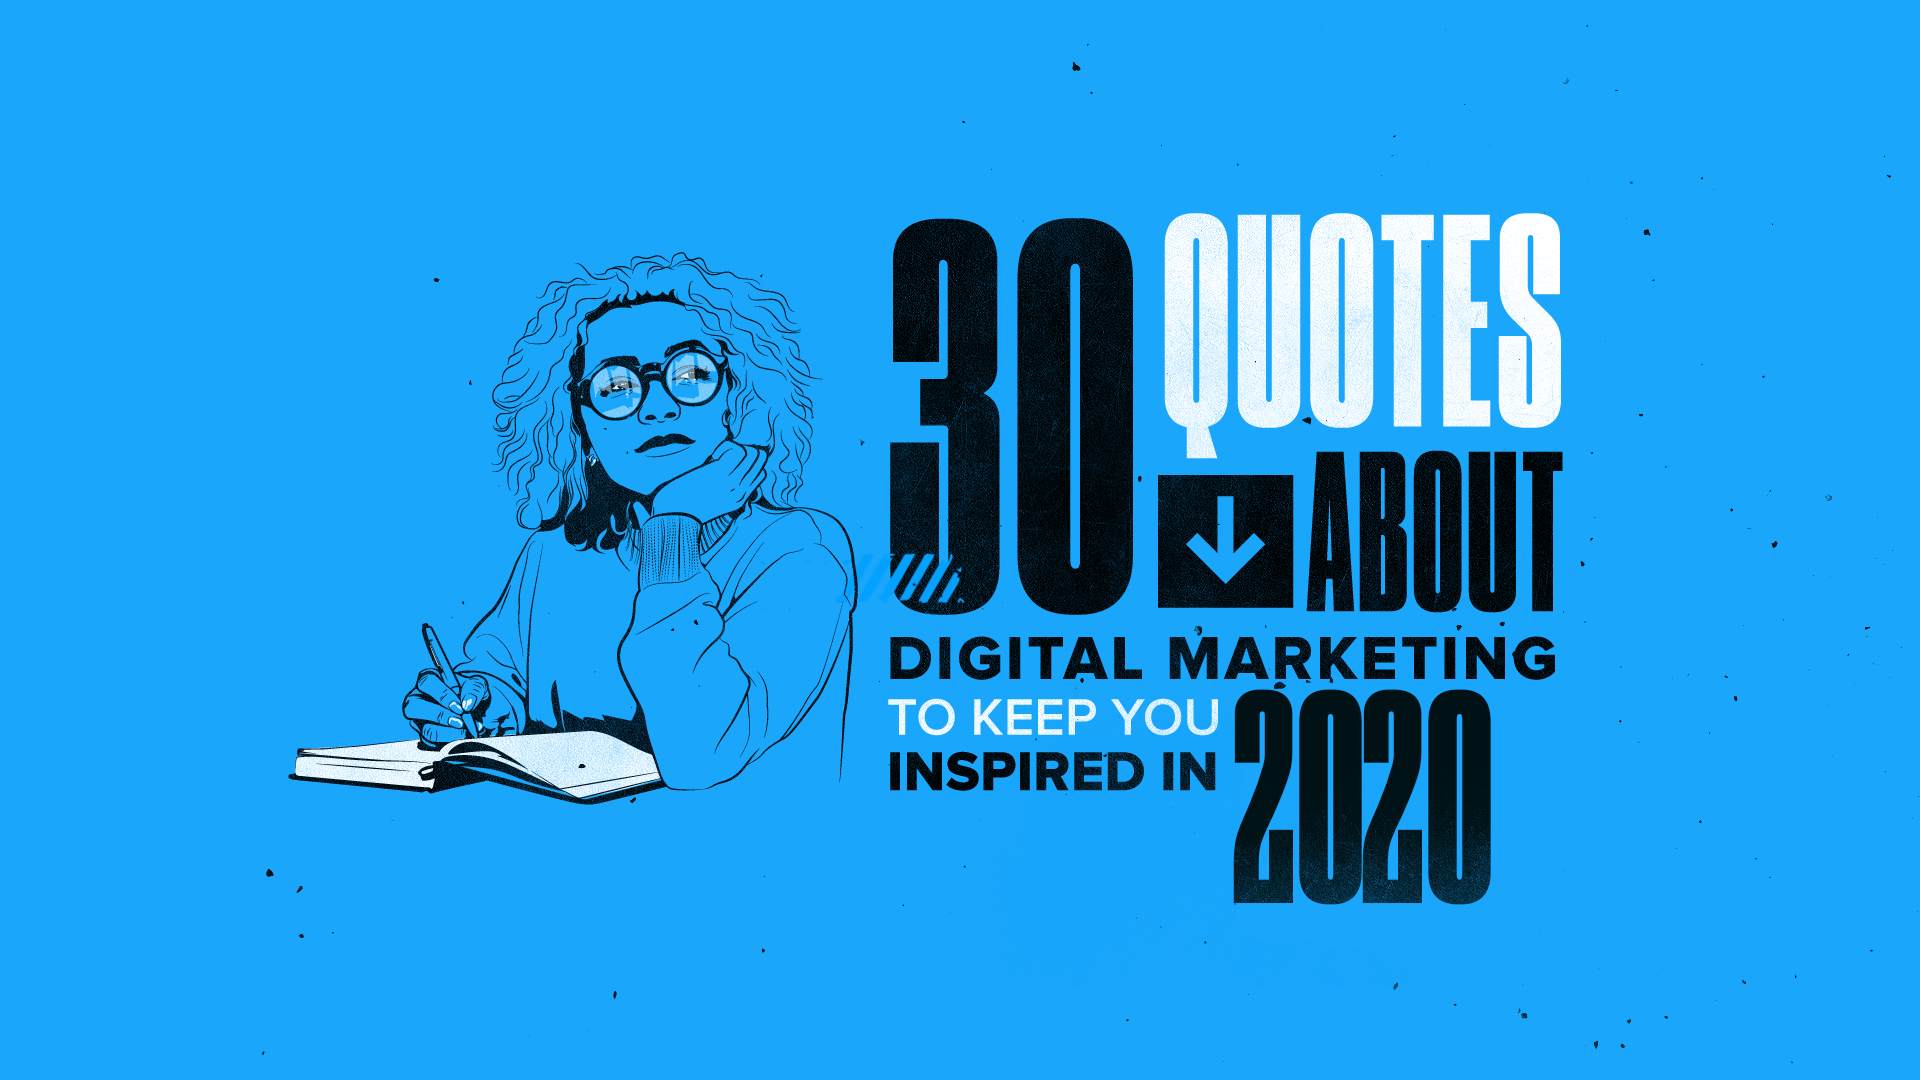 30 Digital Marketing Quotes to Inspire You in North Wales